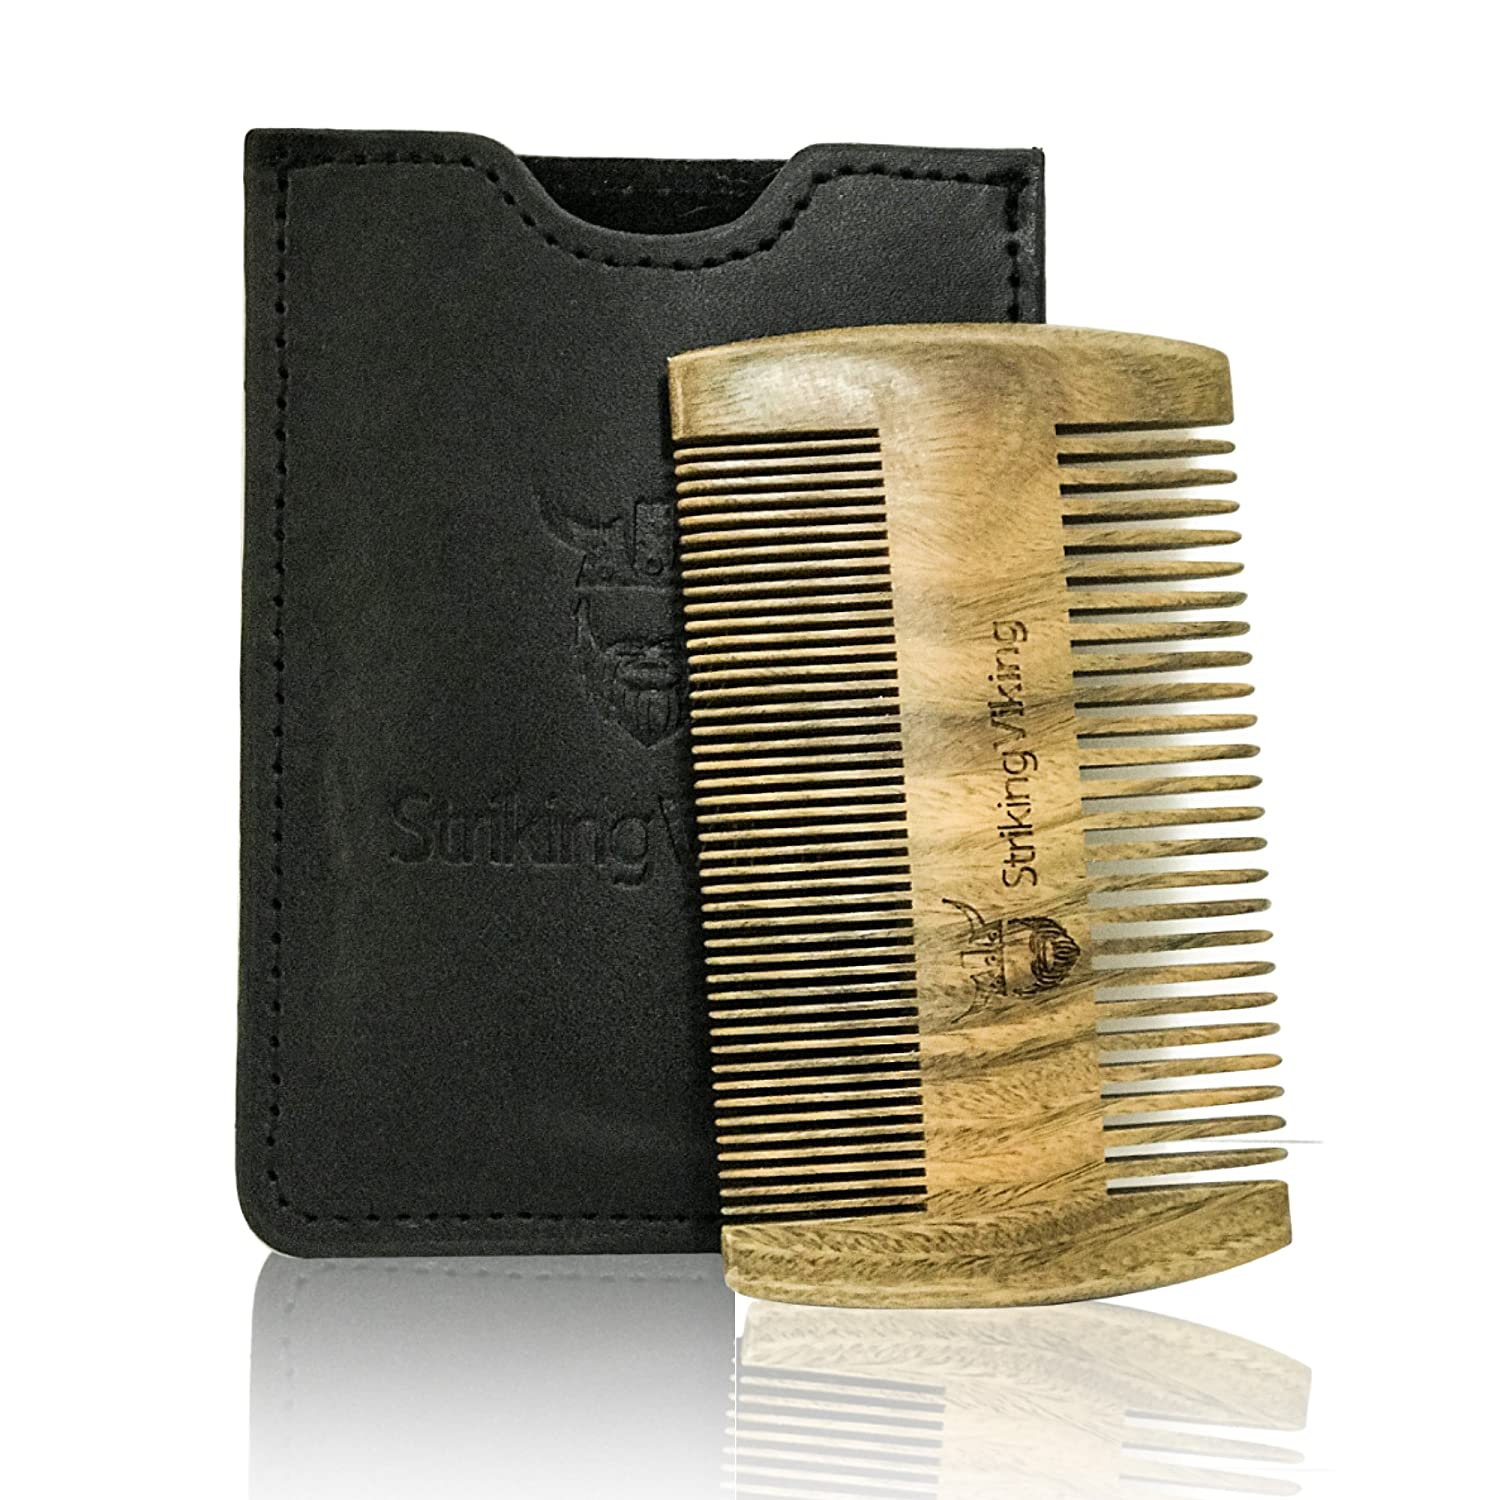 Wooden Beard Comb & Case - Fine & Coarse Teeth from Striking Viking - Anti-Static and Hypoallergenic Wood Pocket Comb For Beards & Mustaches No Model